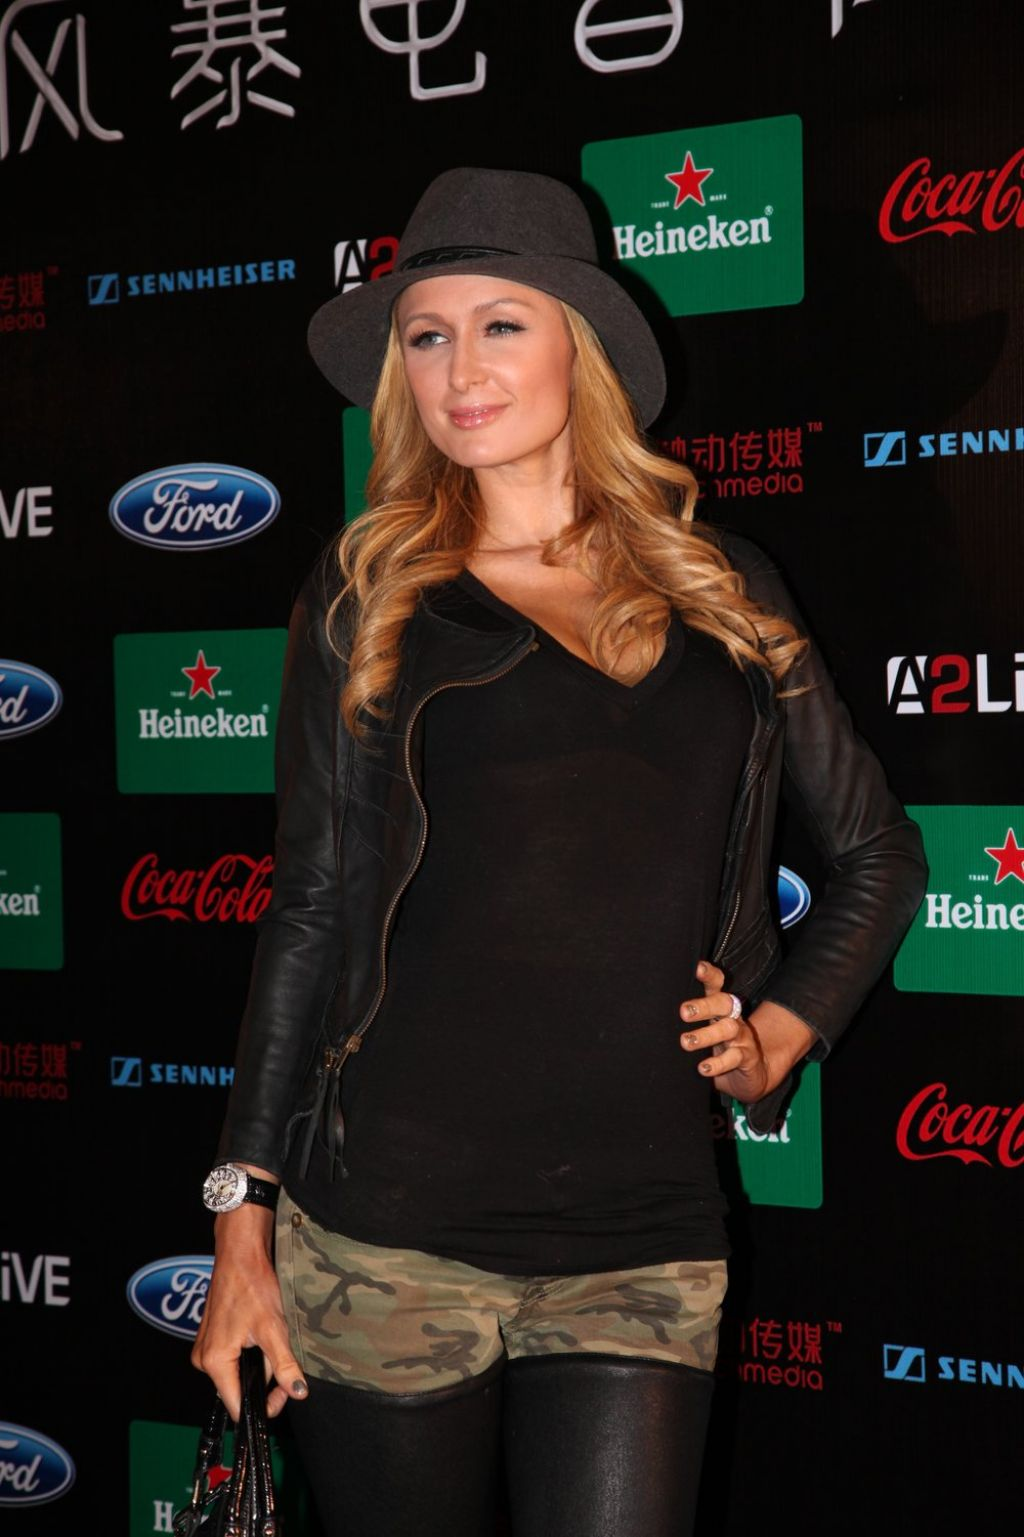 Paris Hilton at Storm Electronic Music Festival